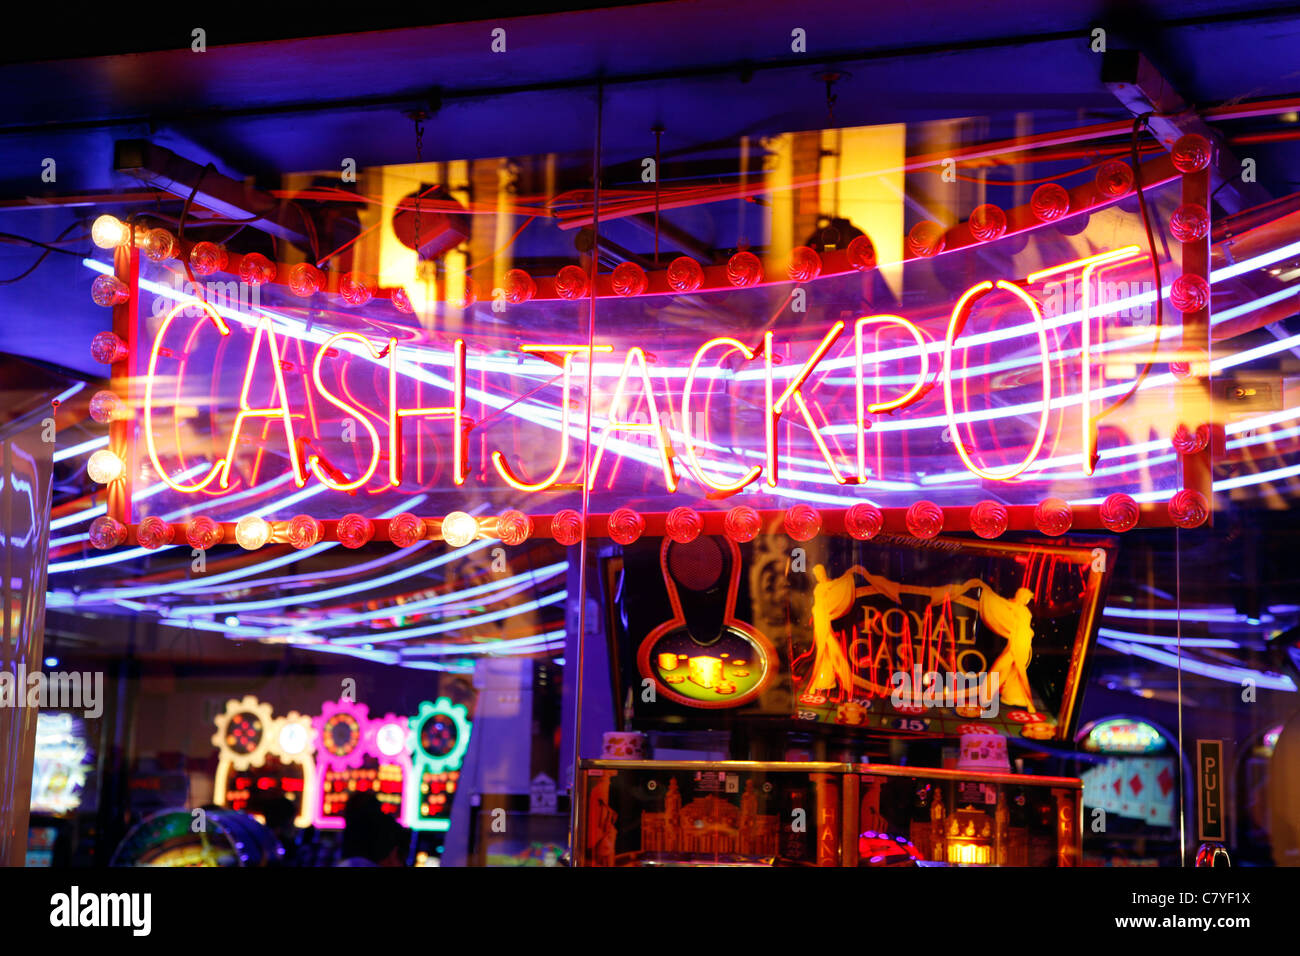 Cash Jackpot sign in Chinatown, London, England - Stock Image